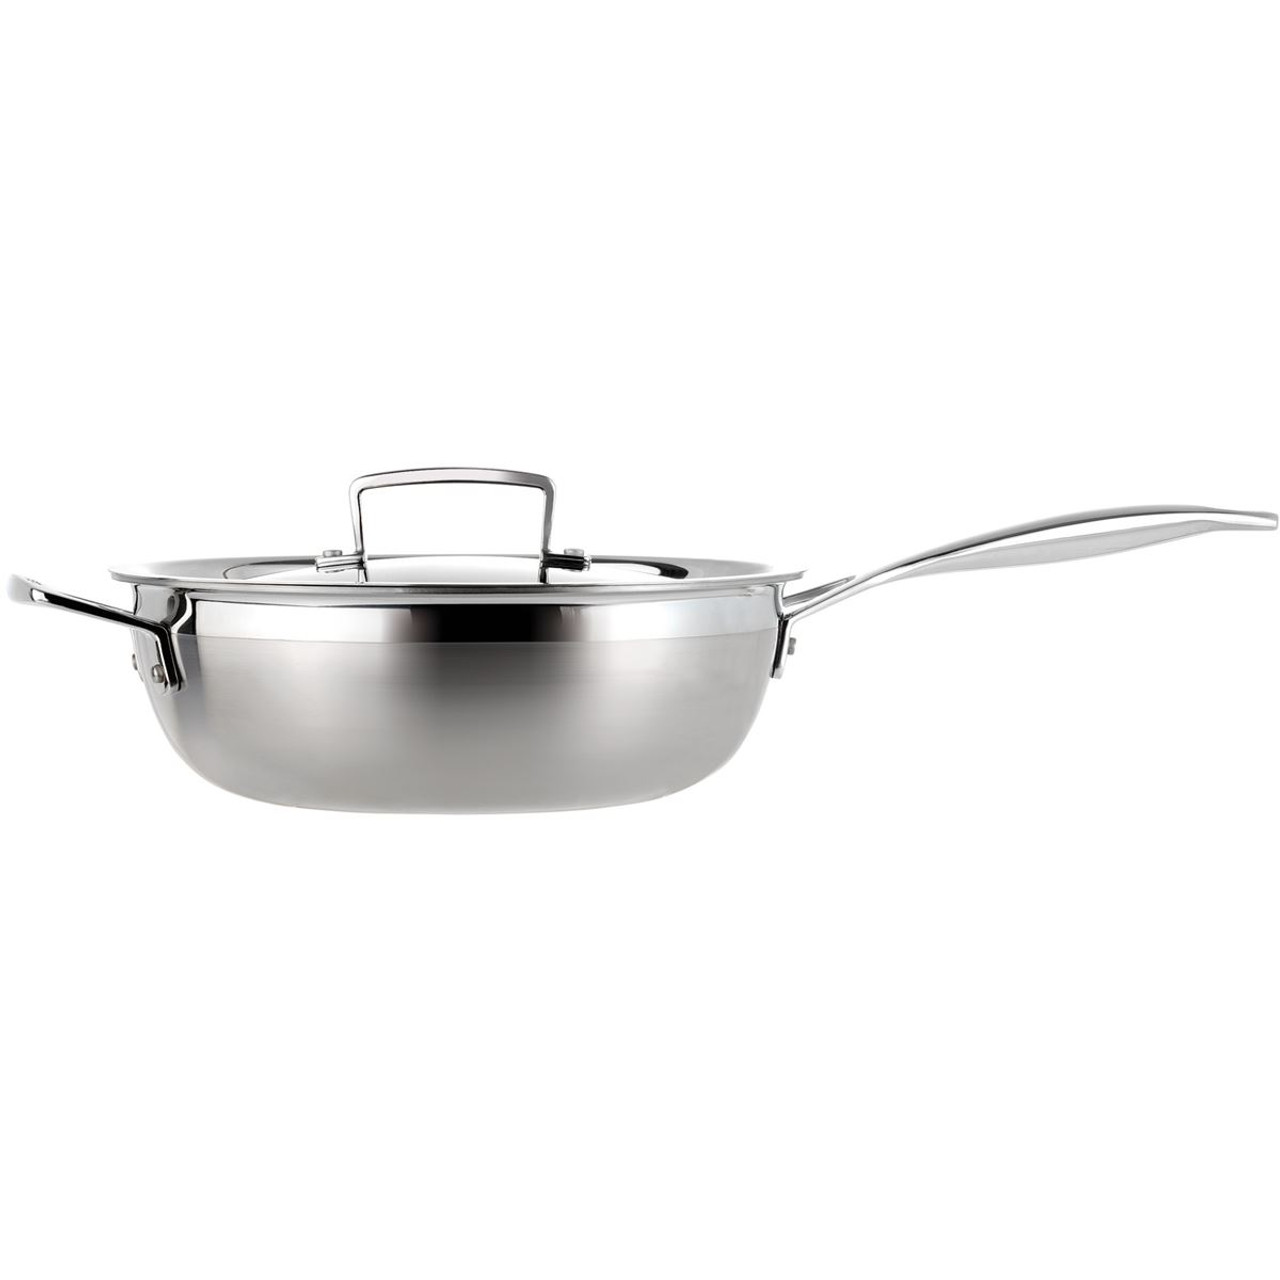 Le Creuset 24cm 3 Ply Stainless Steel Non-stick Chefs Pan